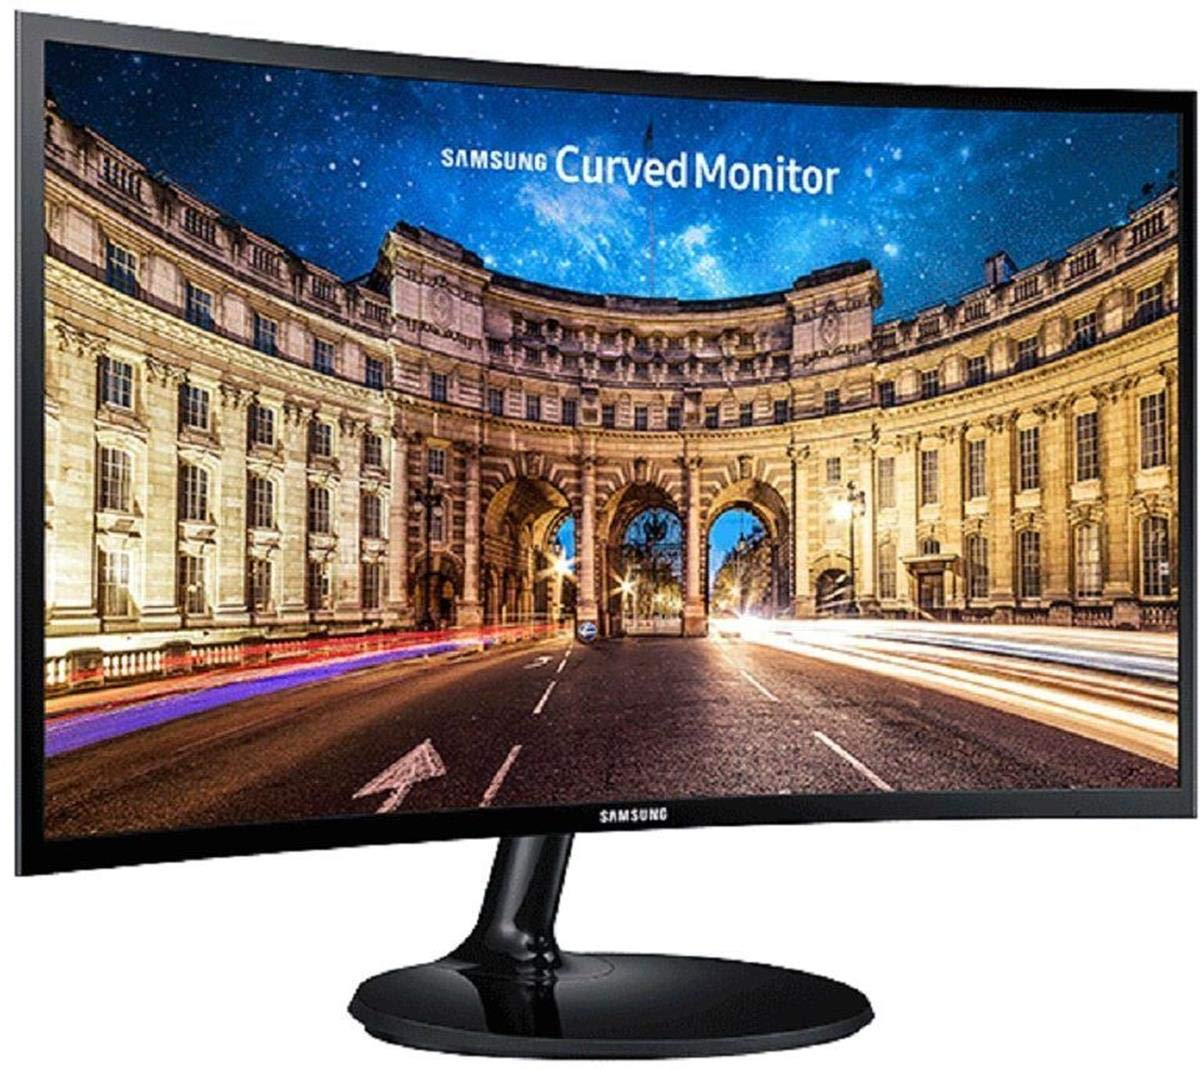 Amazon In Buy Samsung 59 8 Cm 23 5 Inch Curved Led Backlit Computer Monitor Full Hd Va Panel With Vga Hdmi Audio Ports Lc24f390fhwxxl Black Online At Low Prices In India